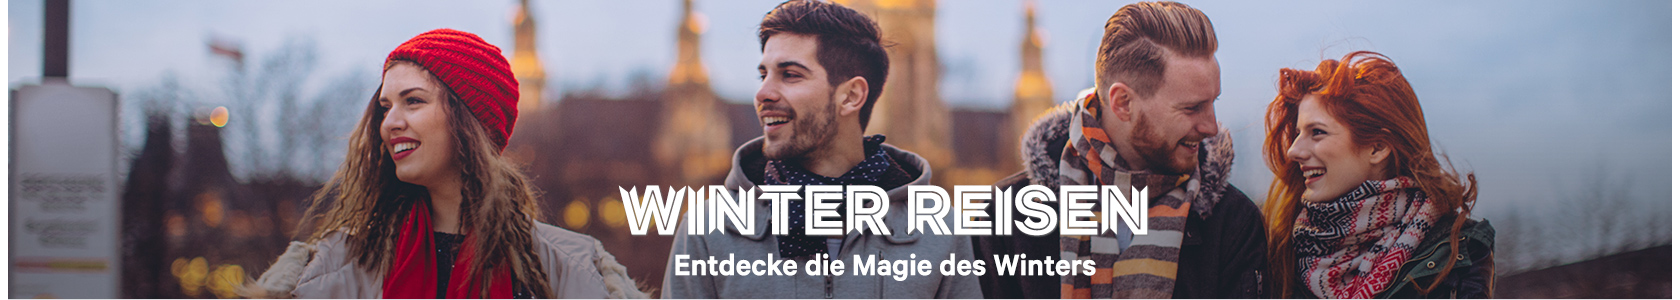 Winter Reisewelt